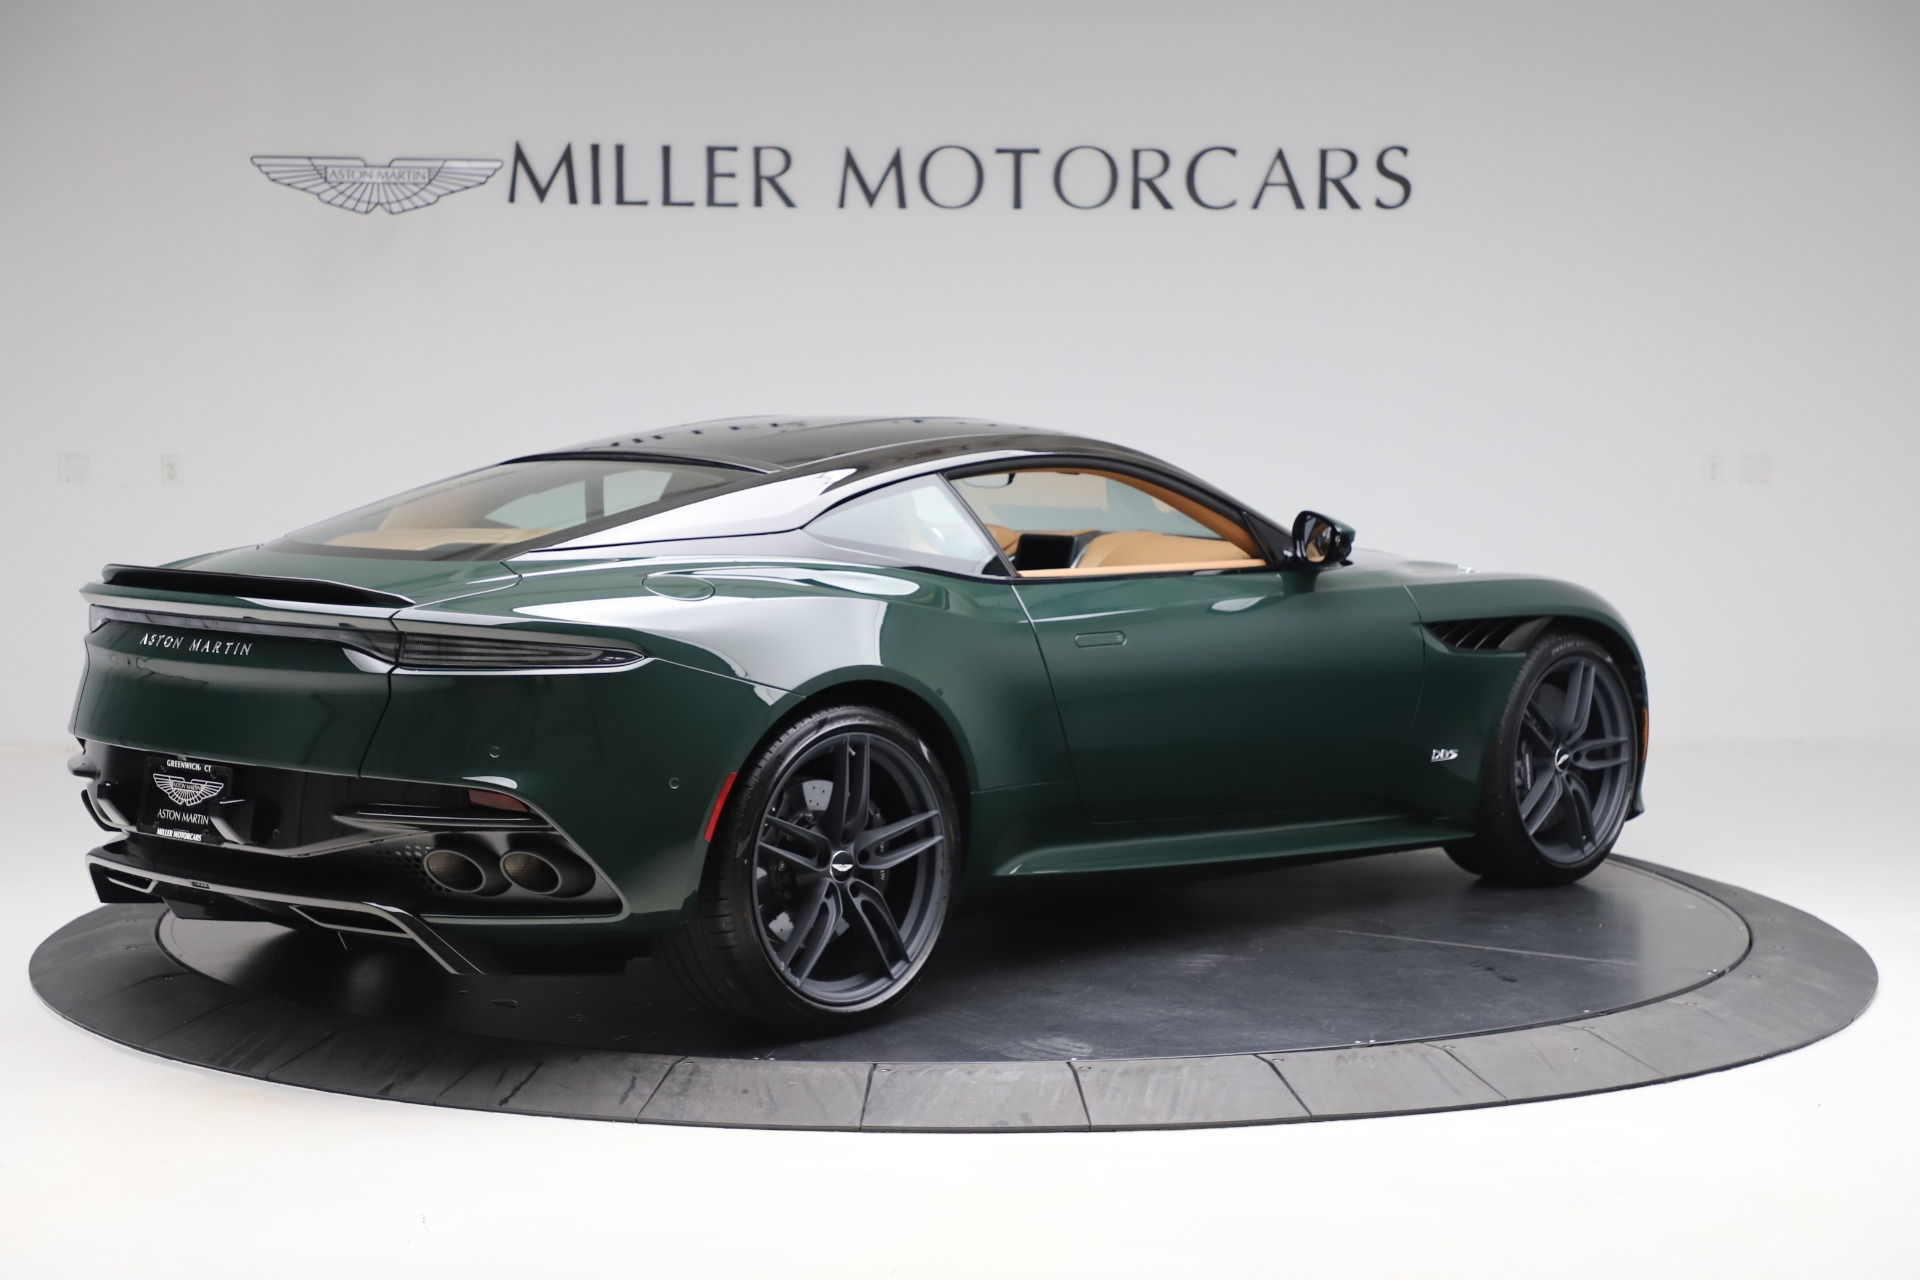 New 2020 Aston Martin DBS Superleggera For Sale In Westport, CT 3550_p8